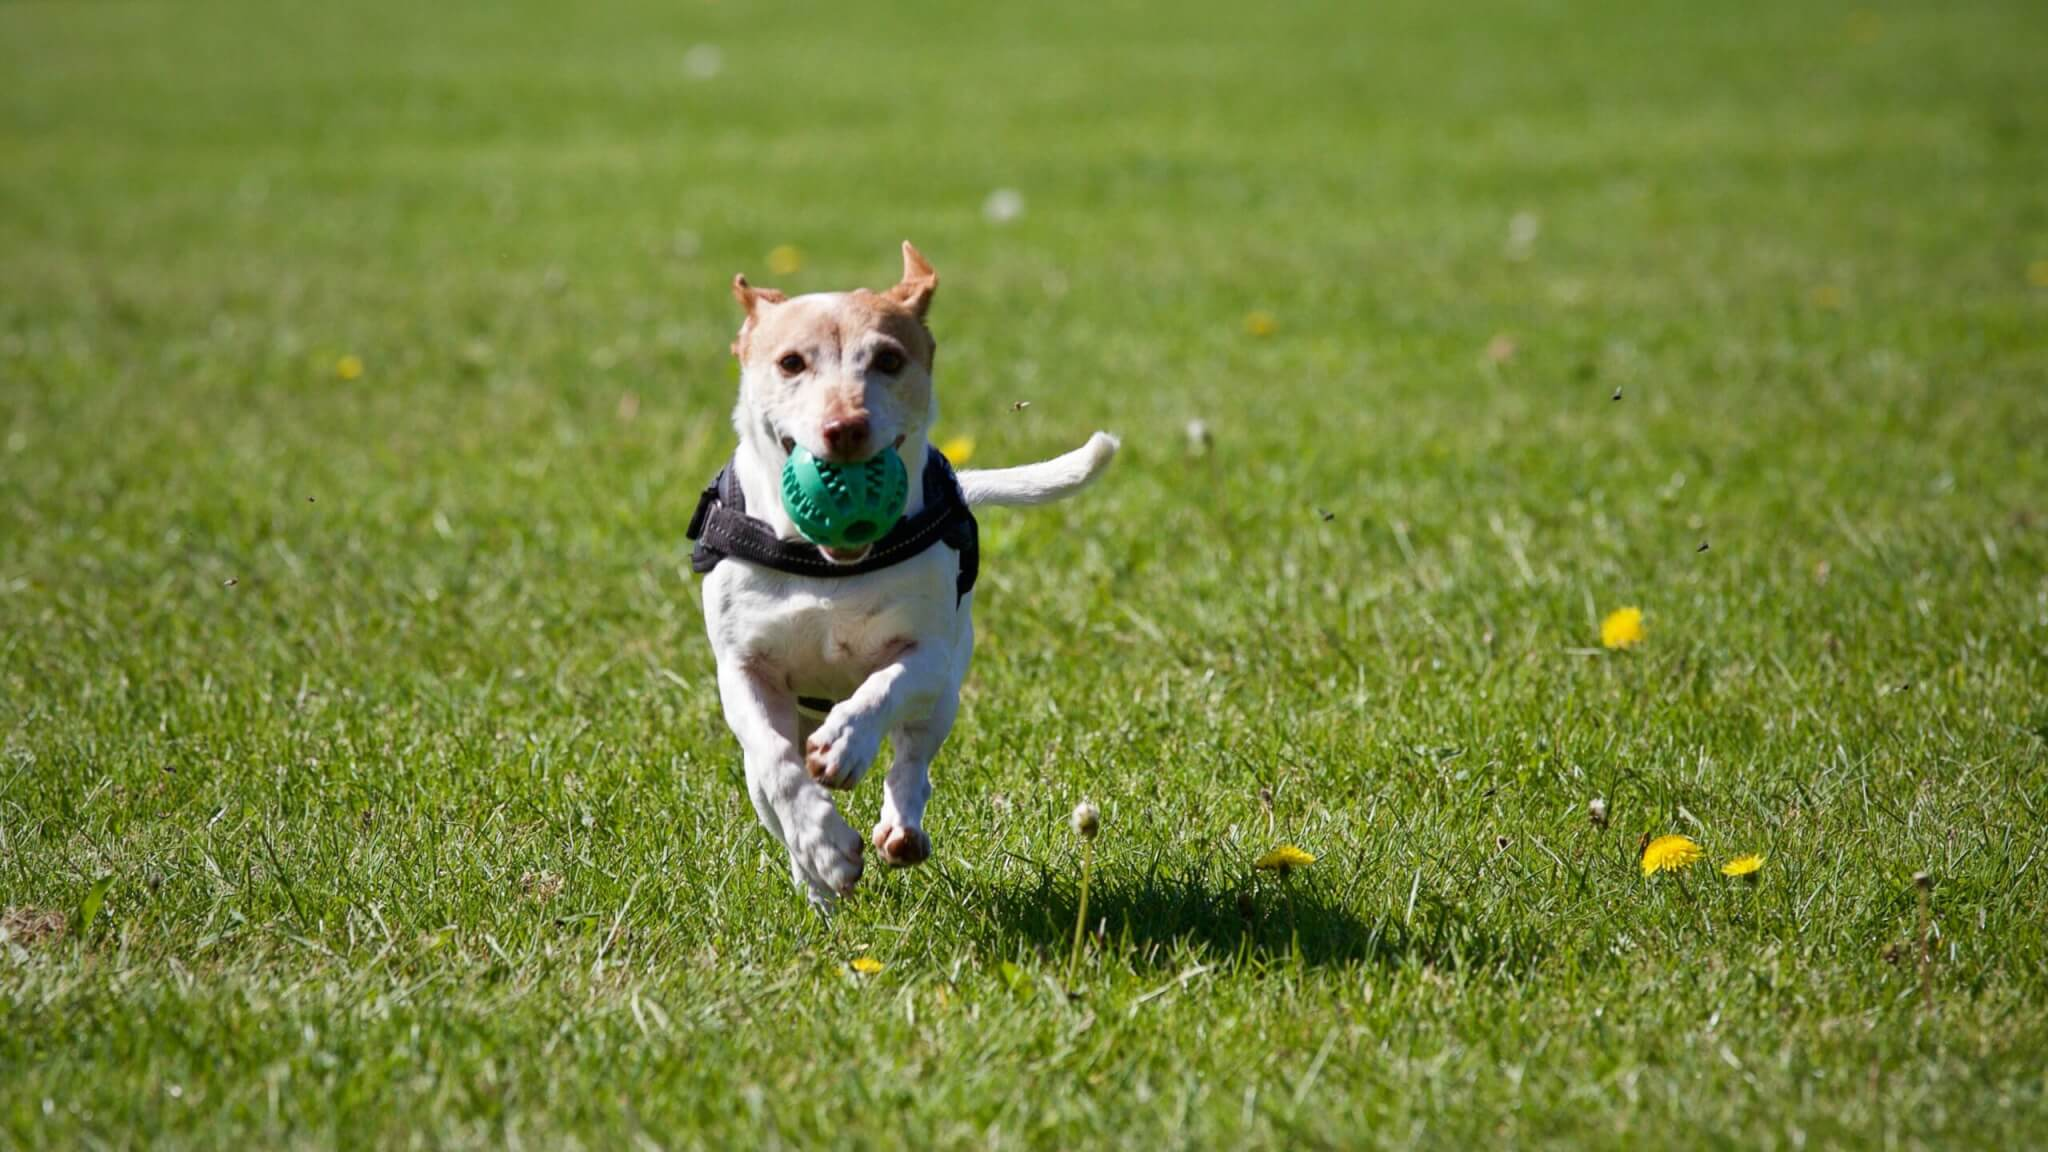 Dog running across lawn with ball